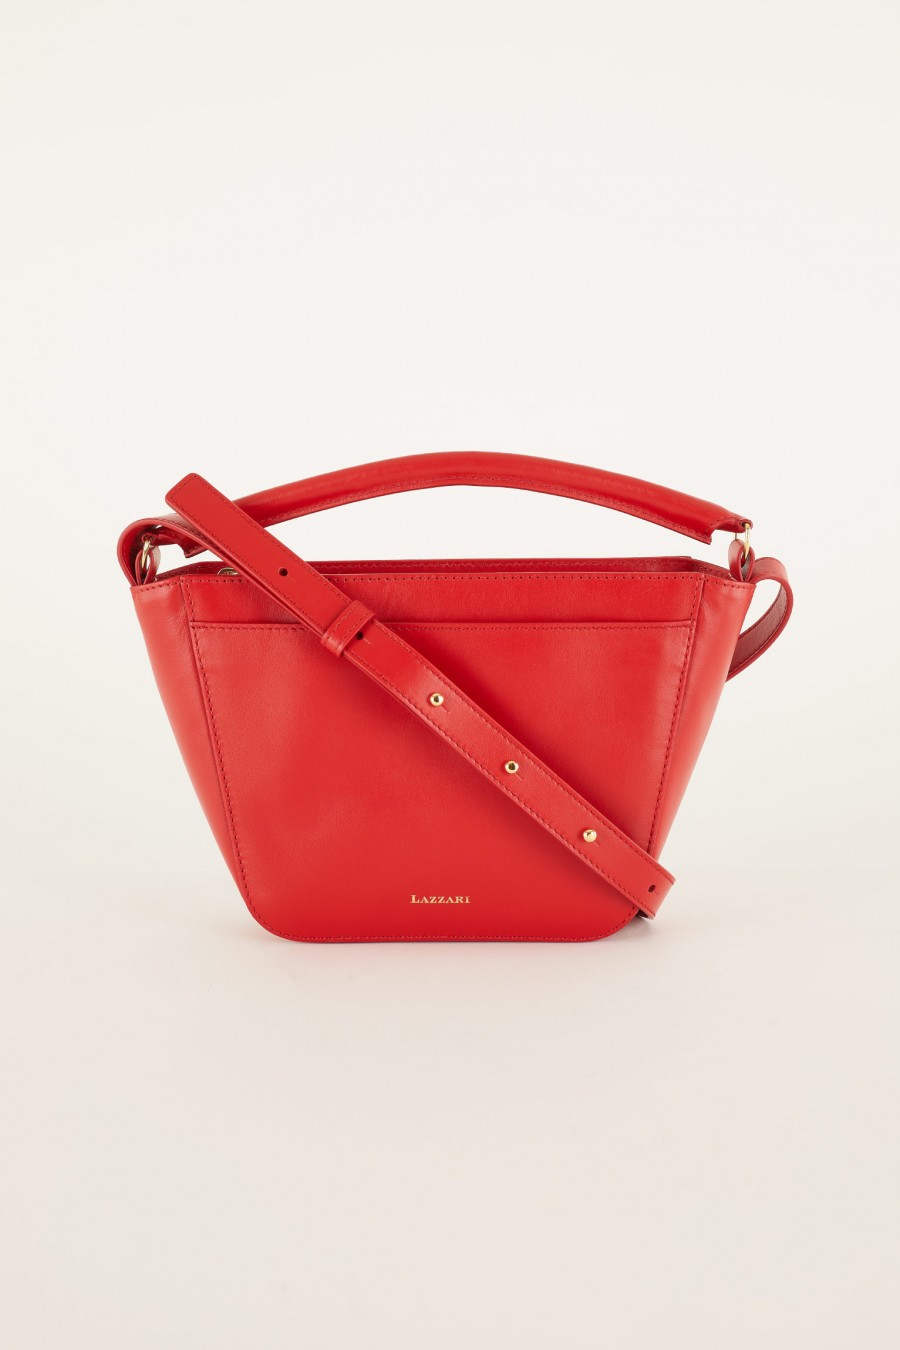 red trapeze bag 100% leather